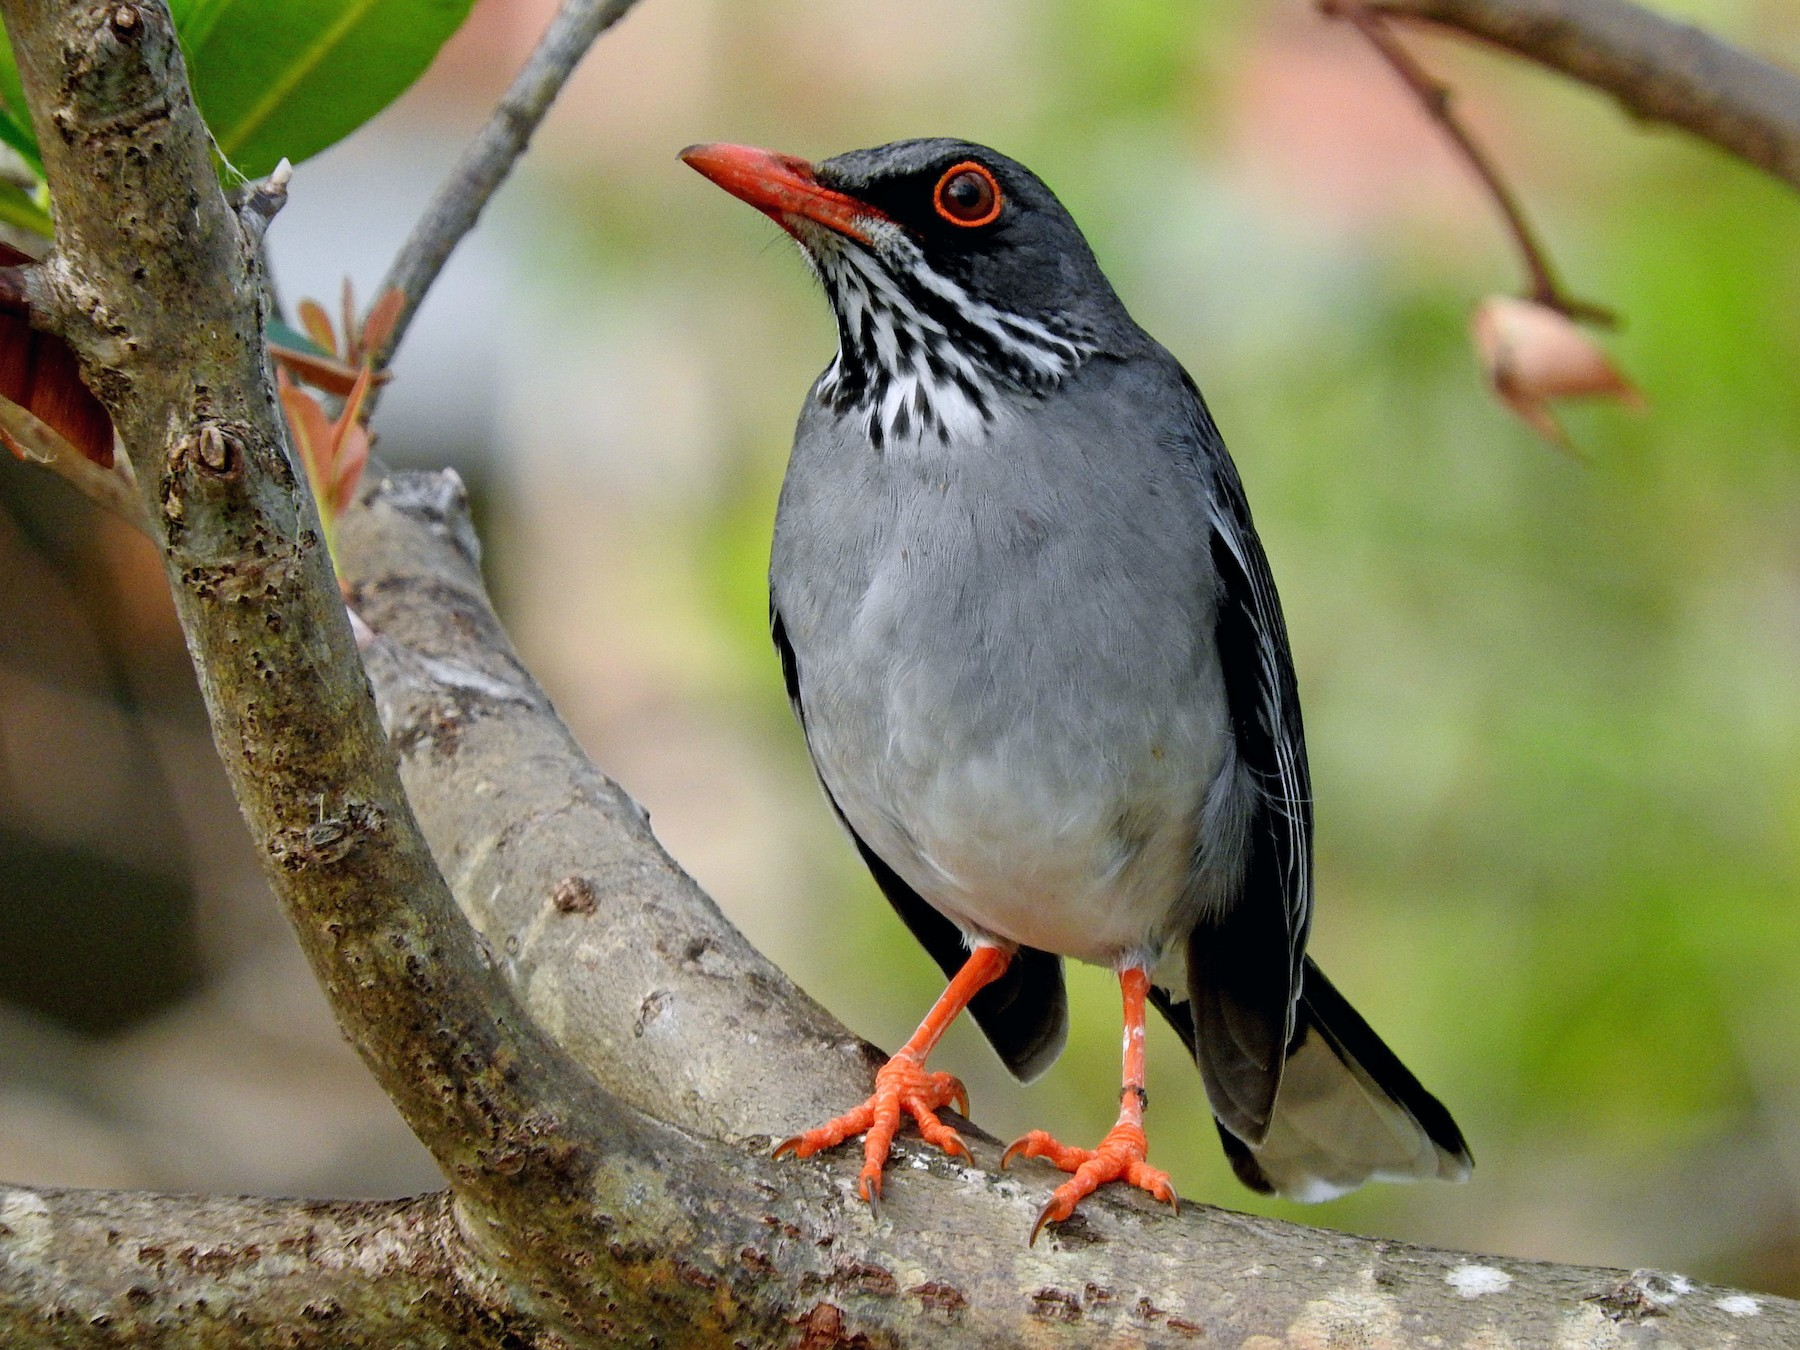 Red-legged Thrush - Eric Haskell